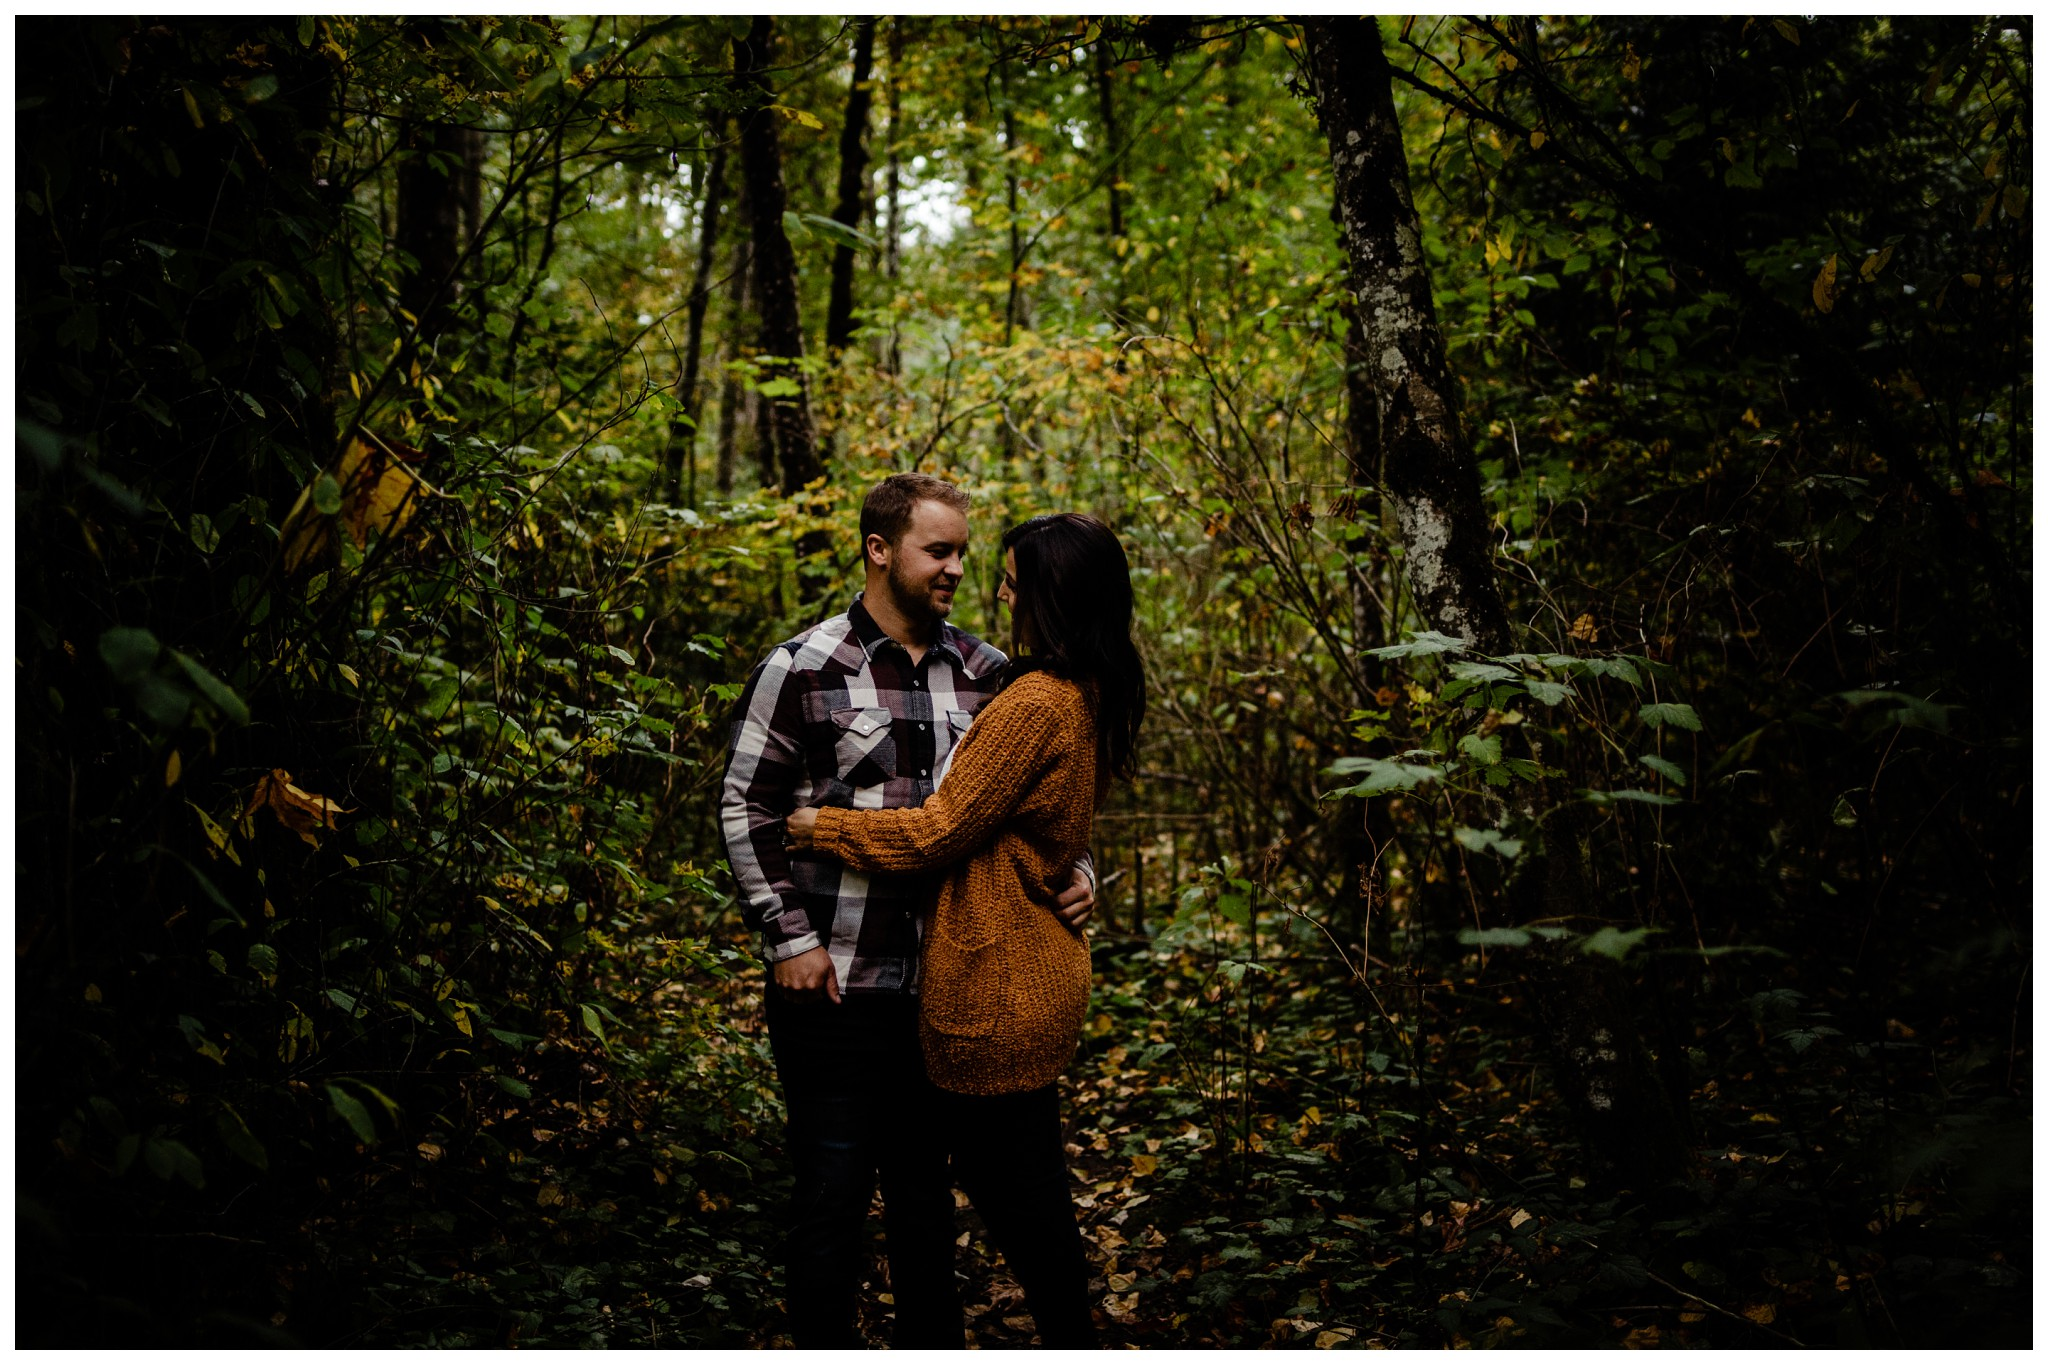 Williams Park Aldergrove Engagement Photographer Moody Fall Couple River Water Romantic Pose Yellow Leaves White Dress Dark_0033.jpg